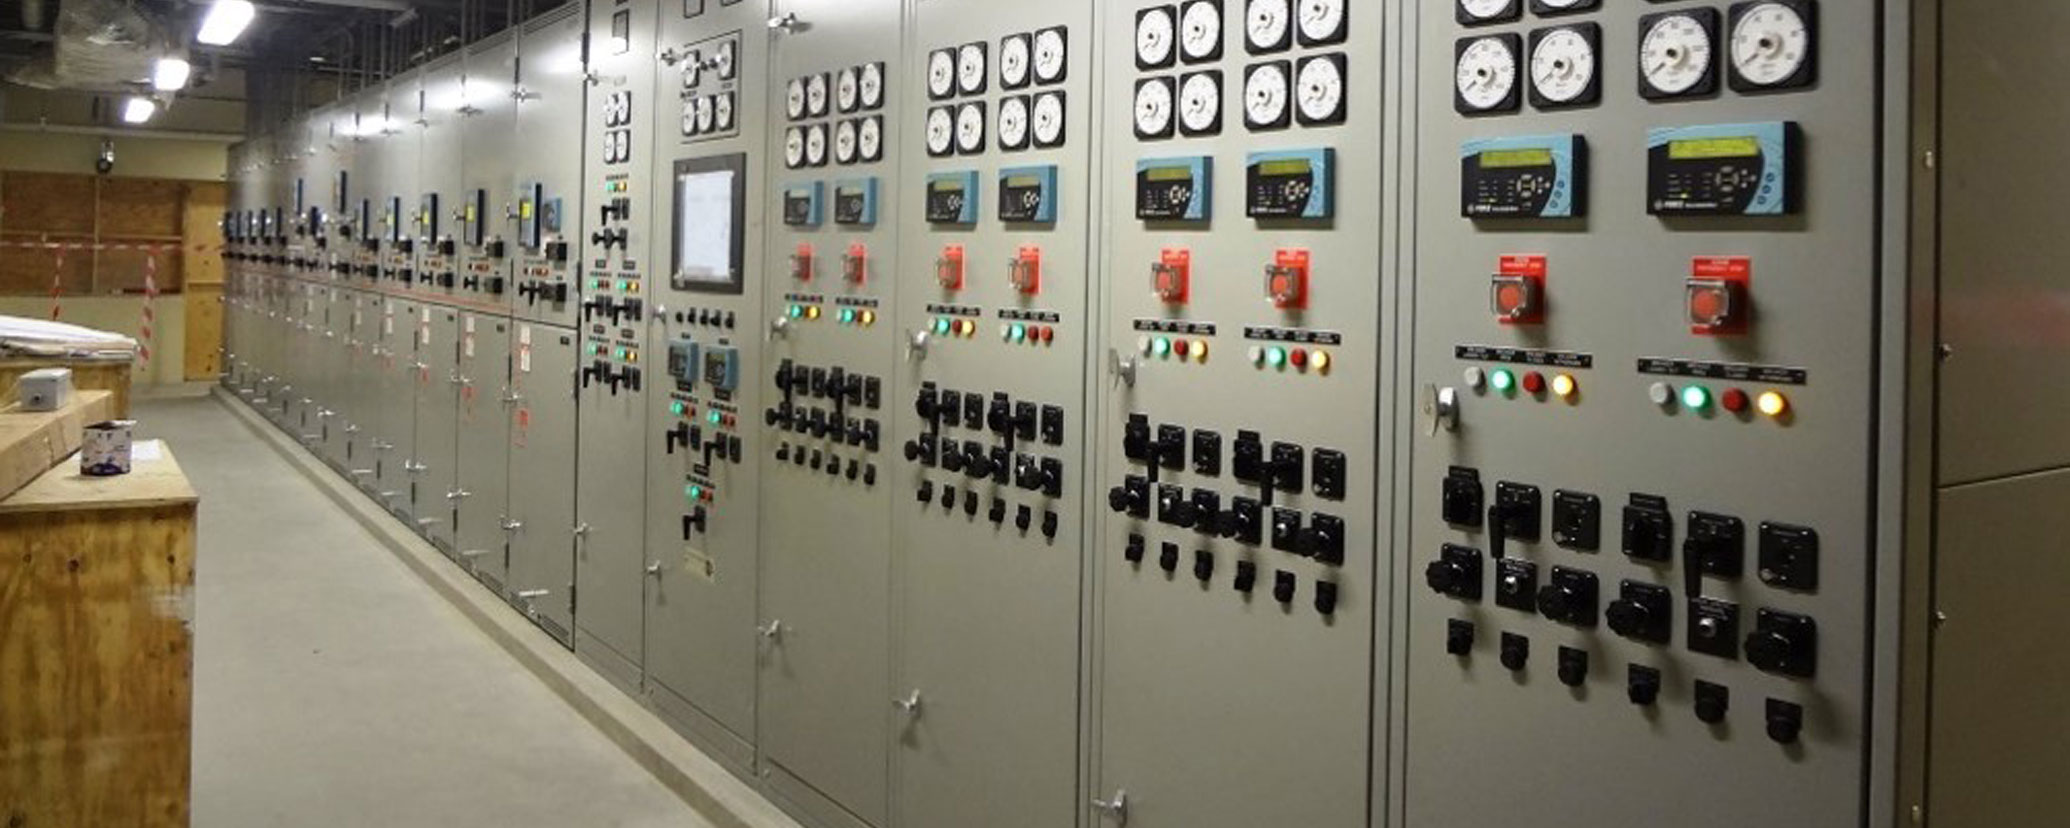 Caddell Construction power systems